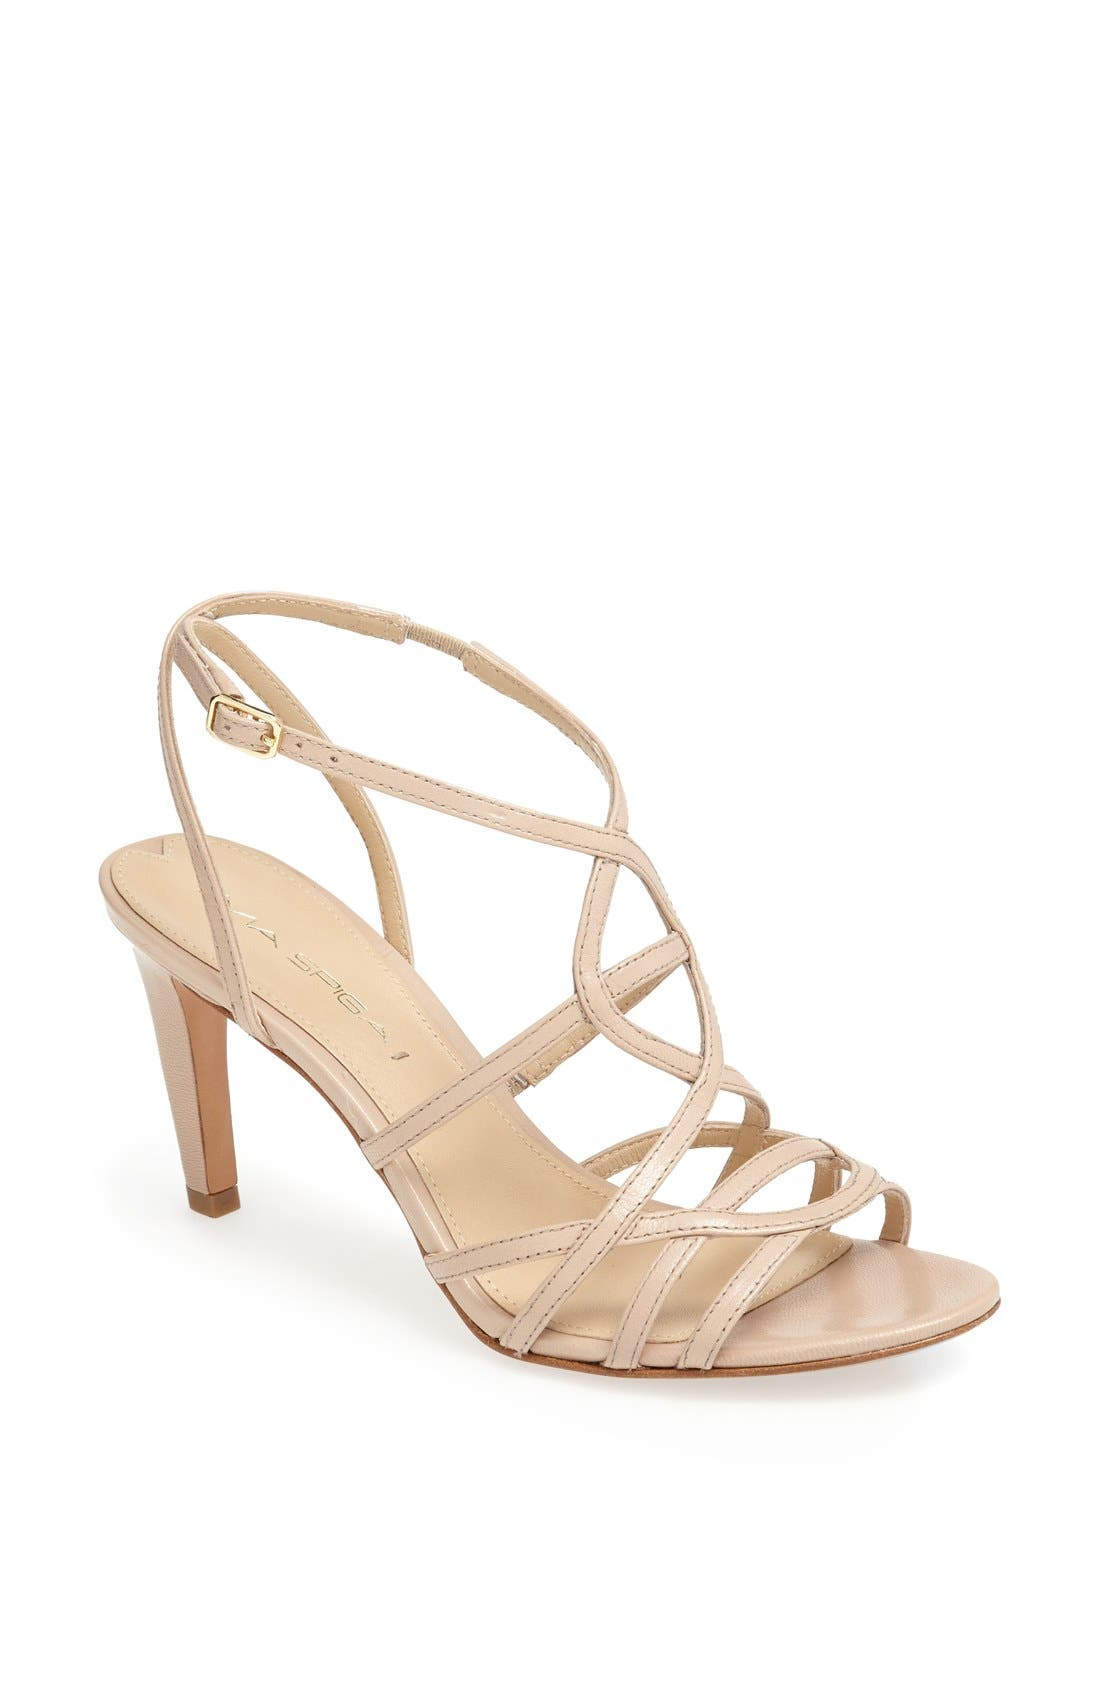 Main Image - Via Spiga 'Ima' Sandal (Nordstrom Exclusive)